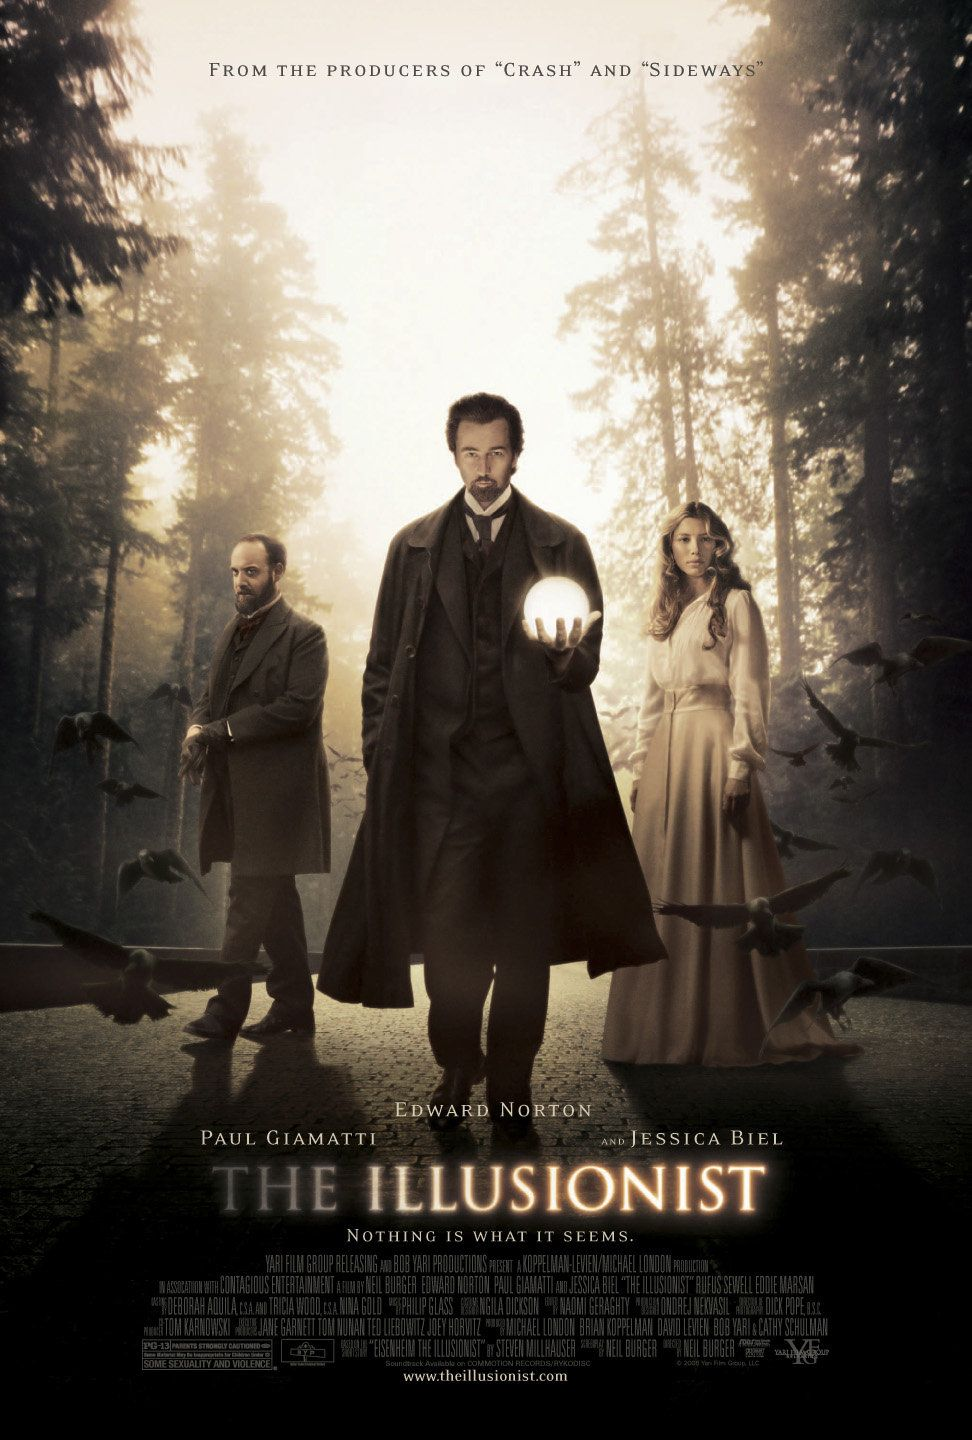 The Illusionist (2006) Movies Streaming movies, Movies